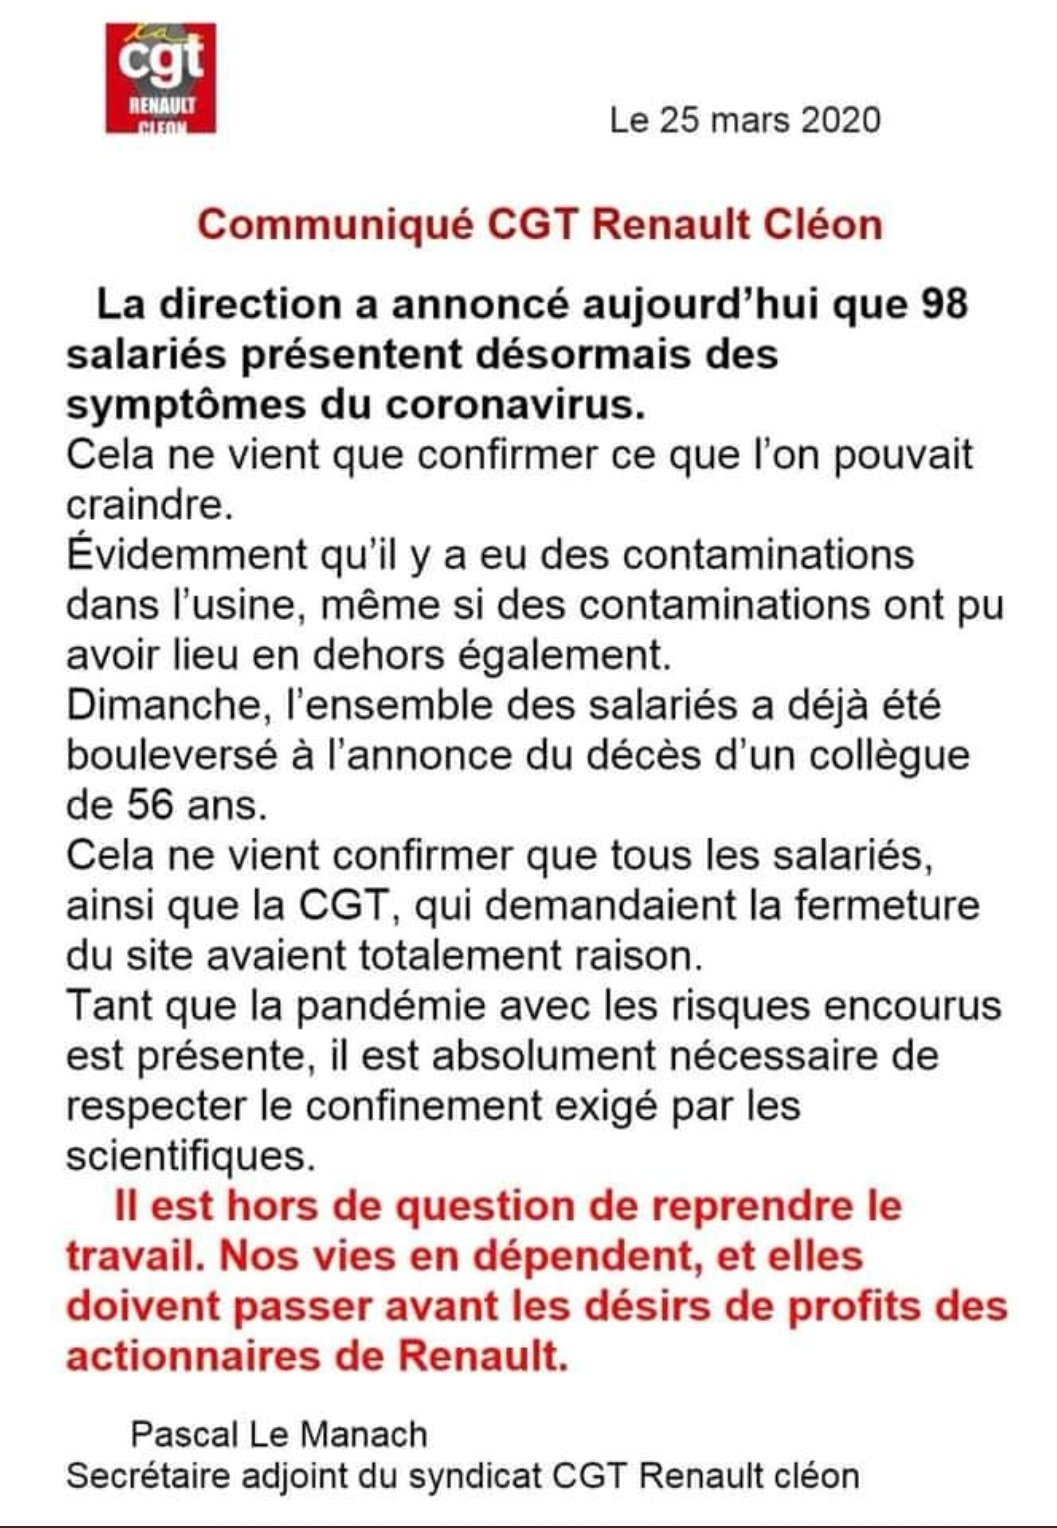 CGT TUIFRANCE on Twitter